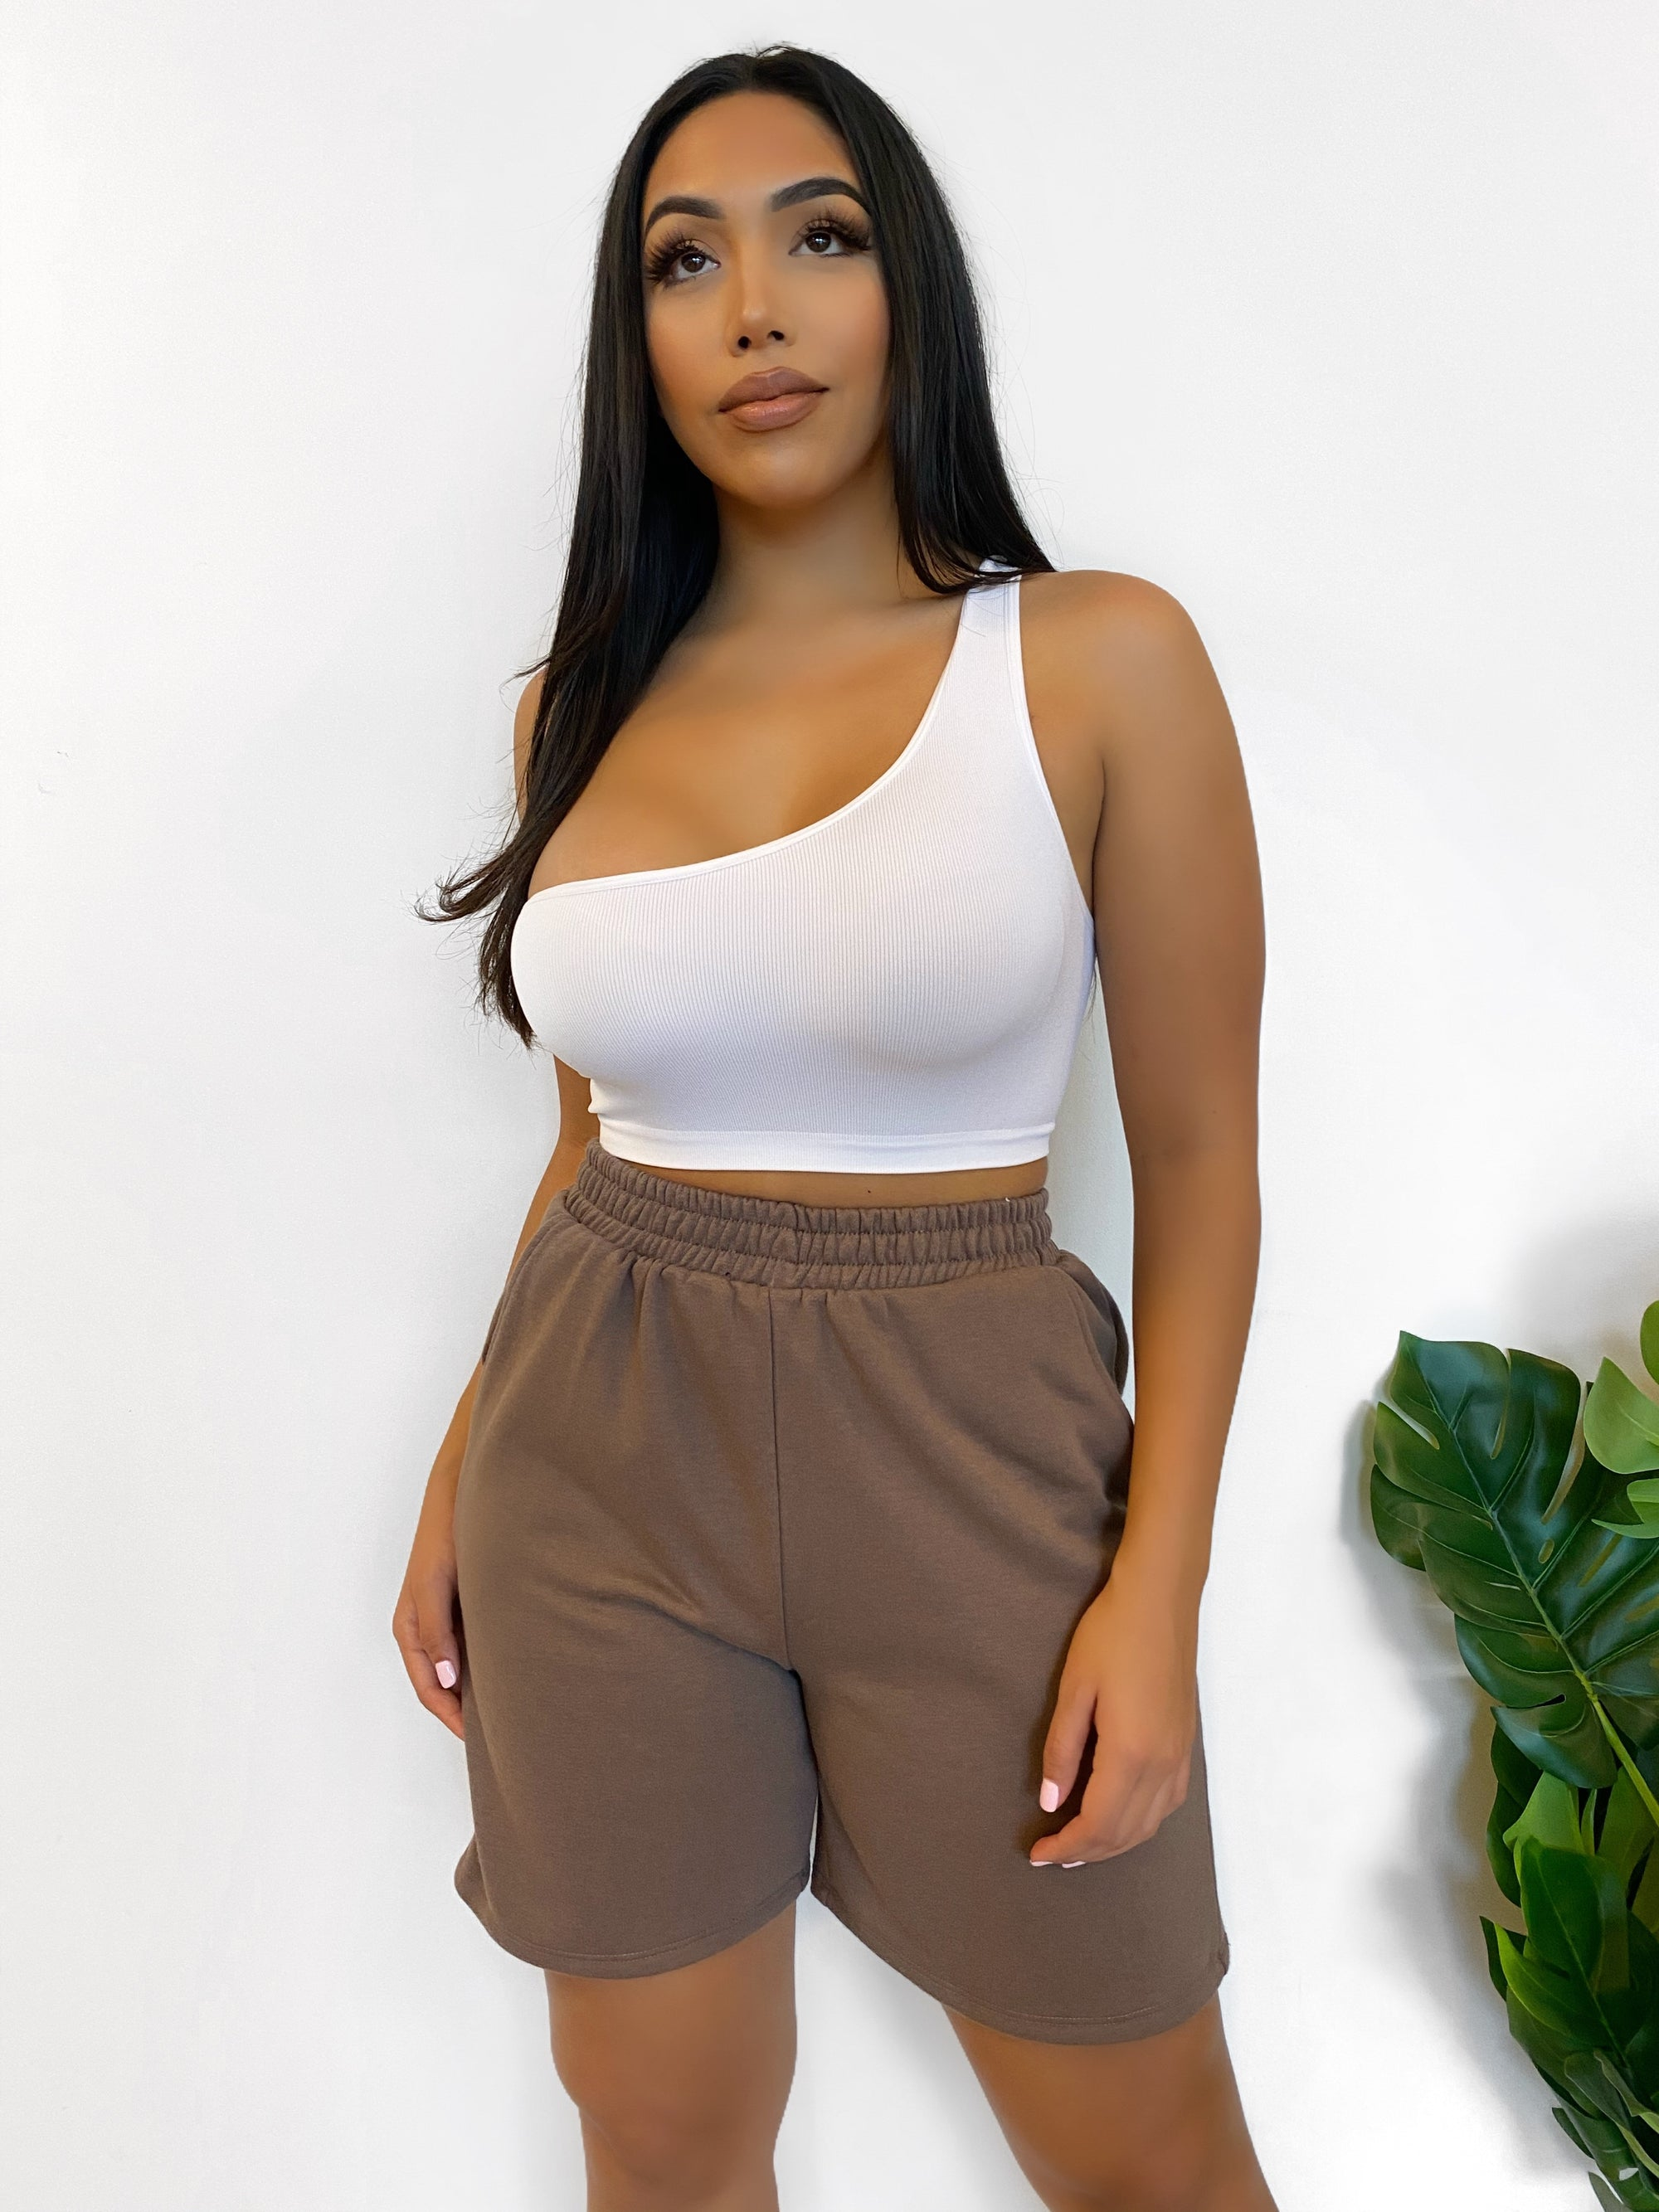 brown sweat shorts, high waist, above the knee length, 2 front pockets